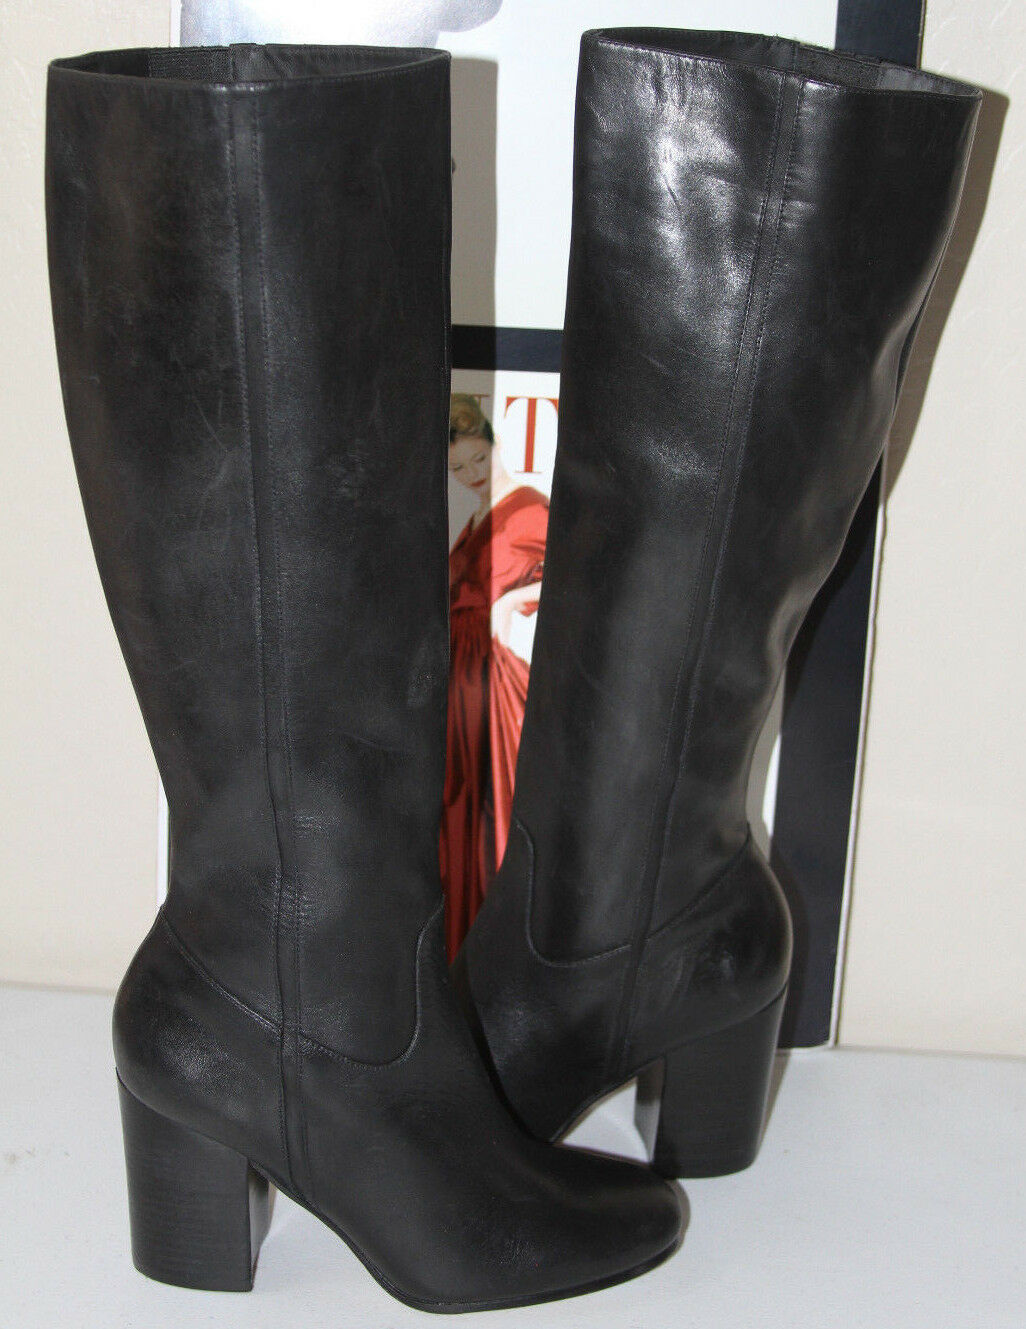 75  VIA SPIGA SOHO BLACK LEATHER KNEE HIGH BOOTS  SZ 6.5  MSRP 495